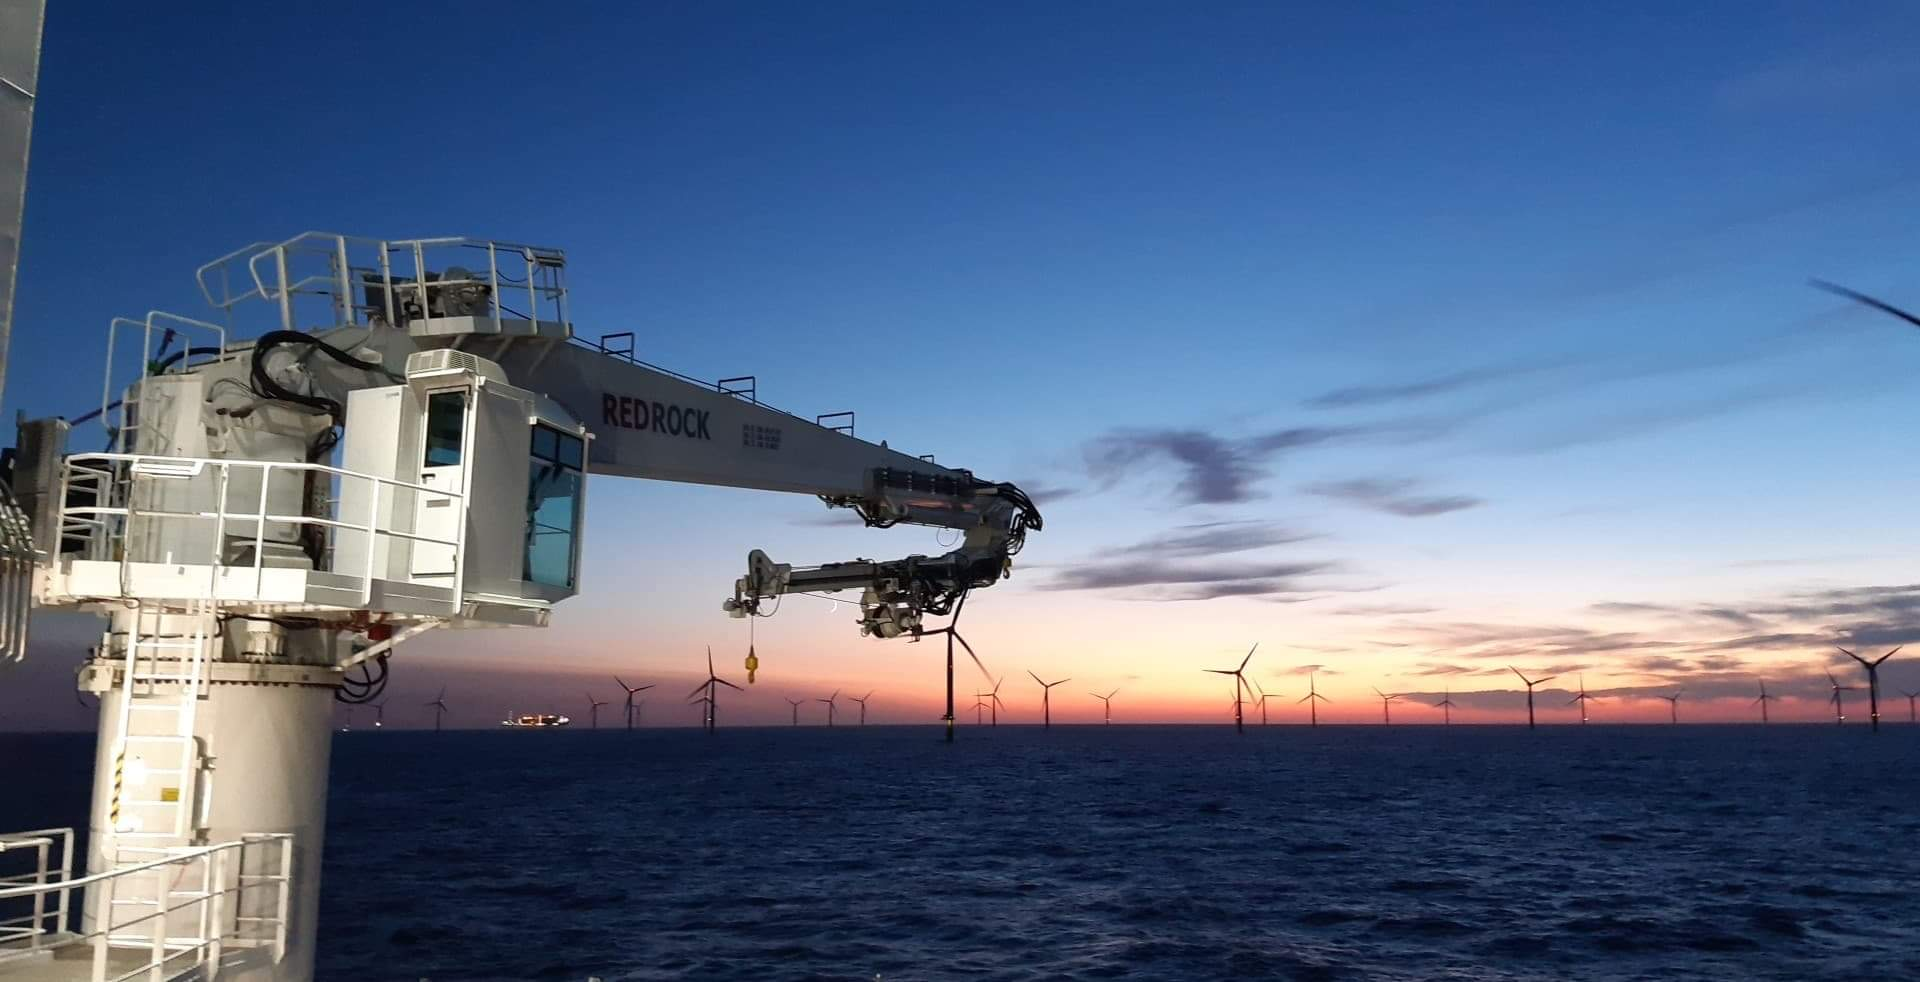 3D Compensation – Red Rock's New Deal to Offshore Wind